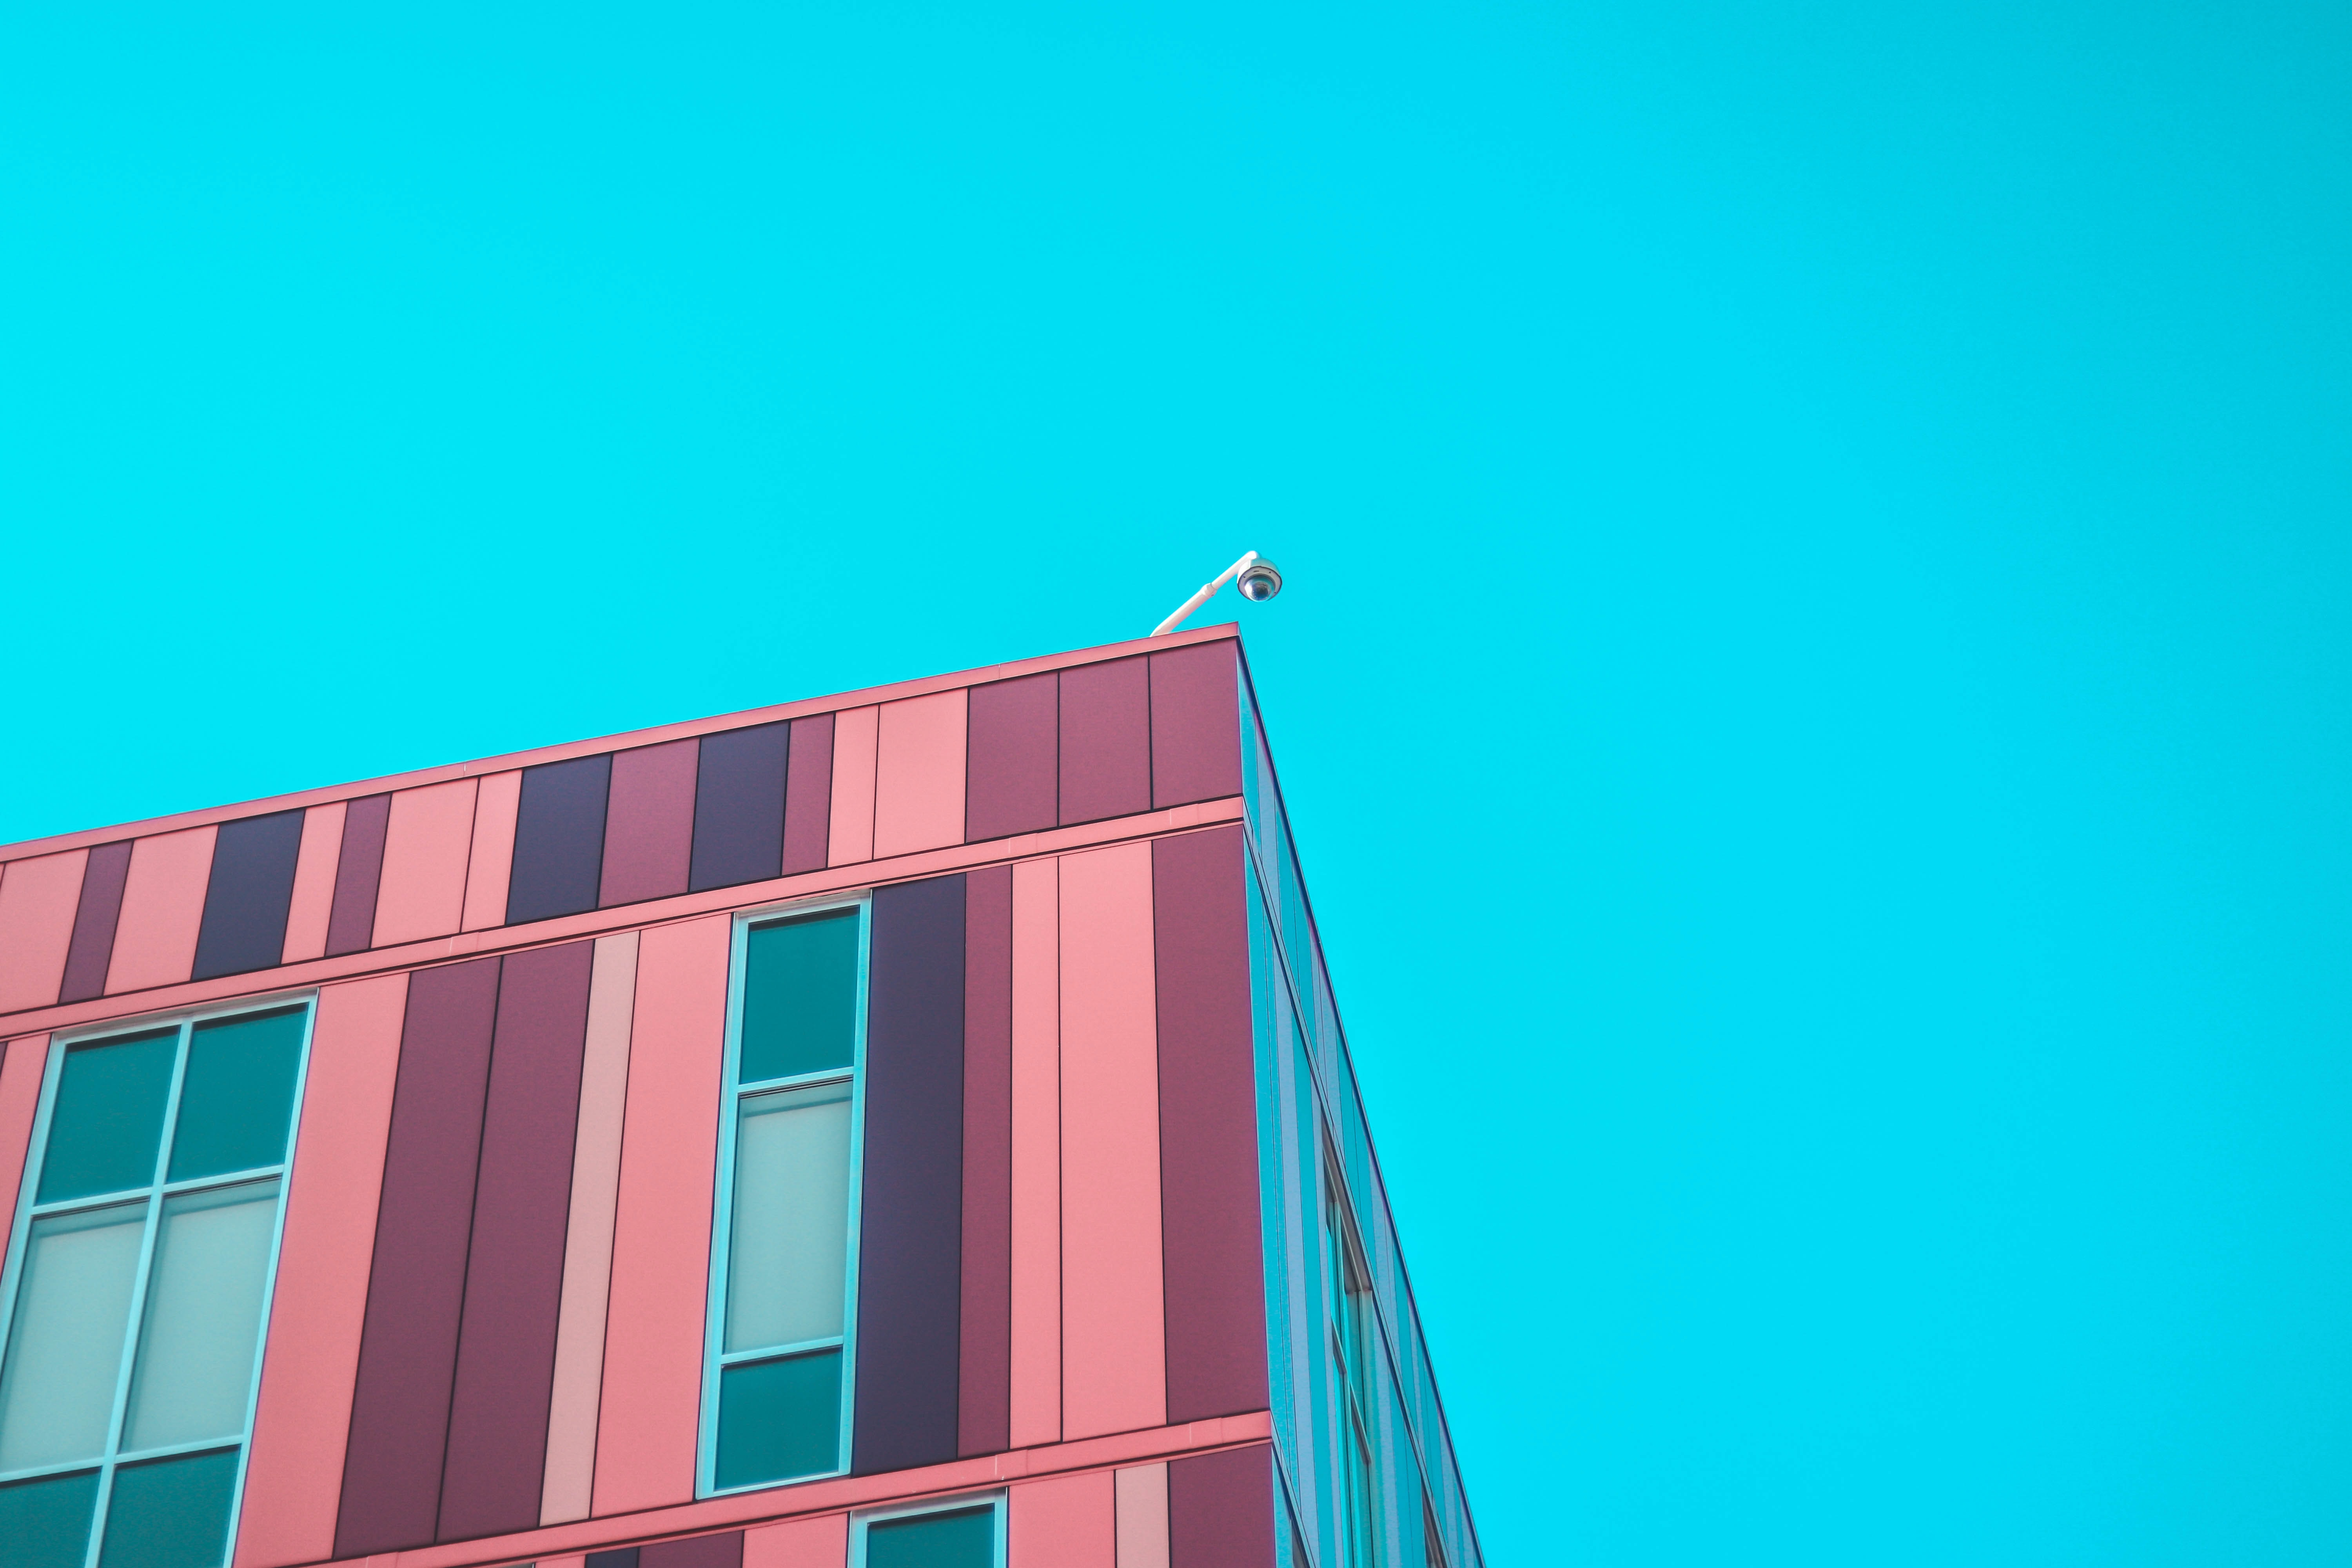 minimalist photography of high-rise building under blue sky